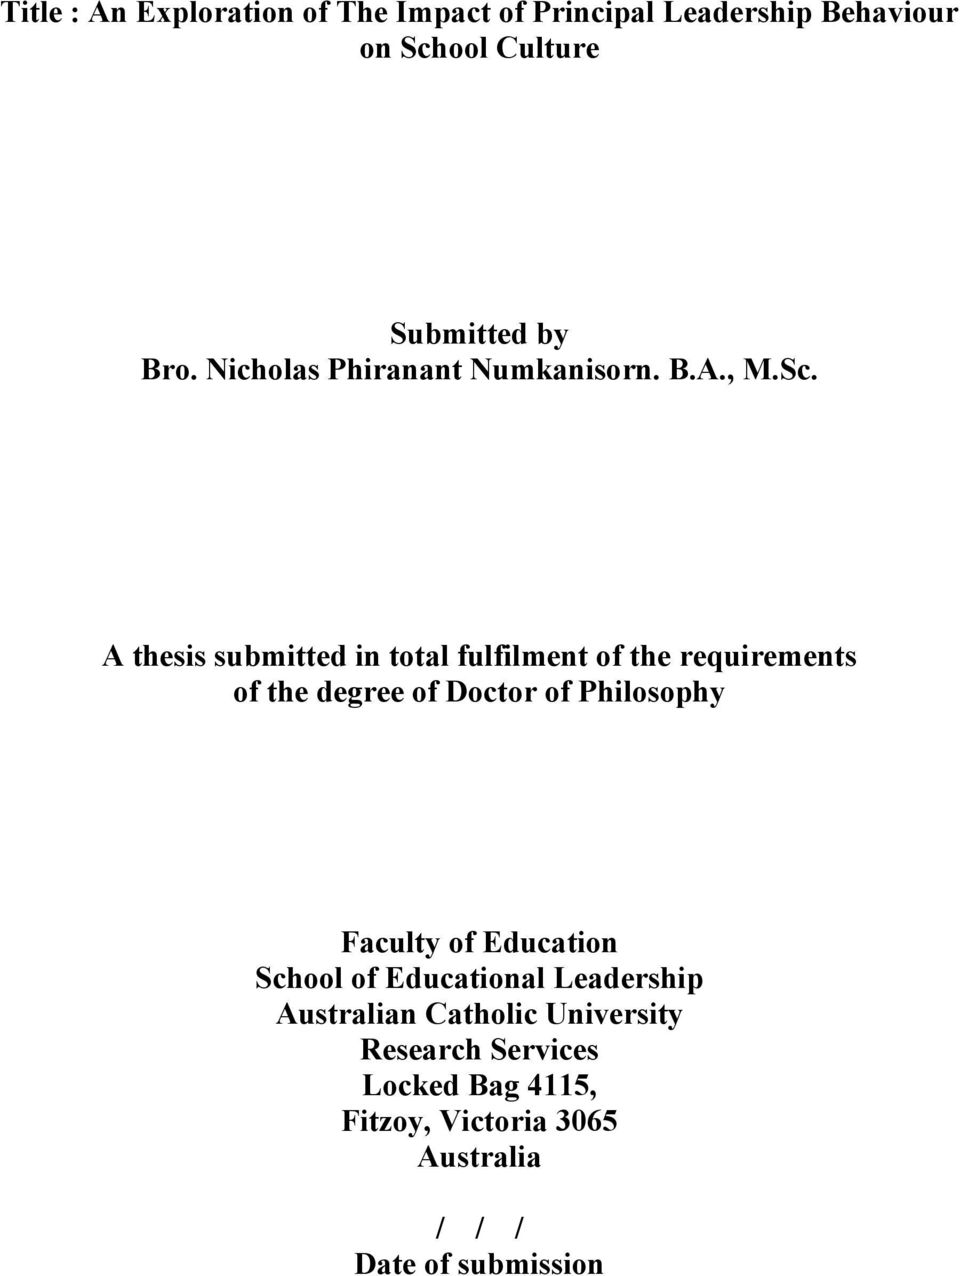 A thesis submitted in total fulfilment of the requirements of the degree of Doctor of Philosophy Faculty